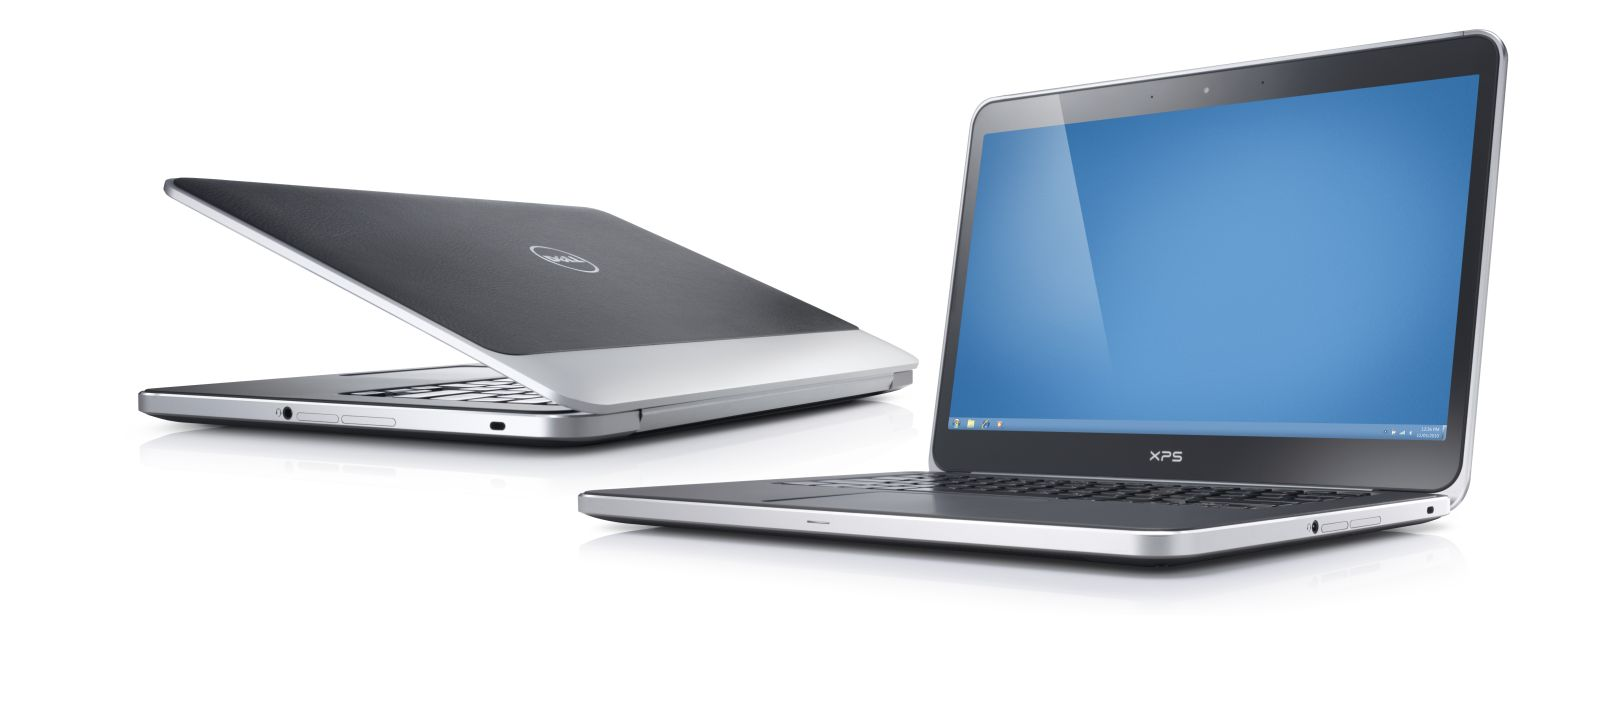 Dell starts shipping thin XPS 14 ultrabook in Singapore